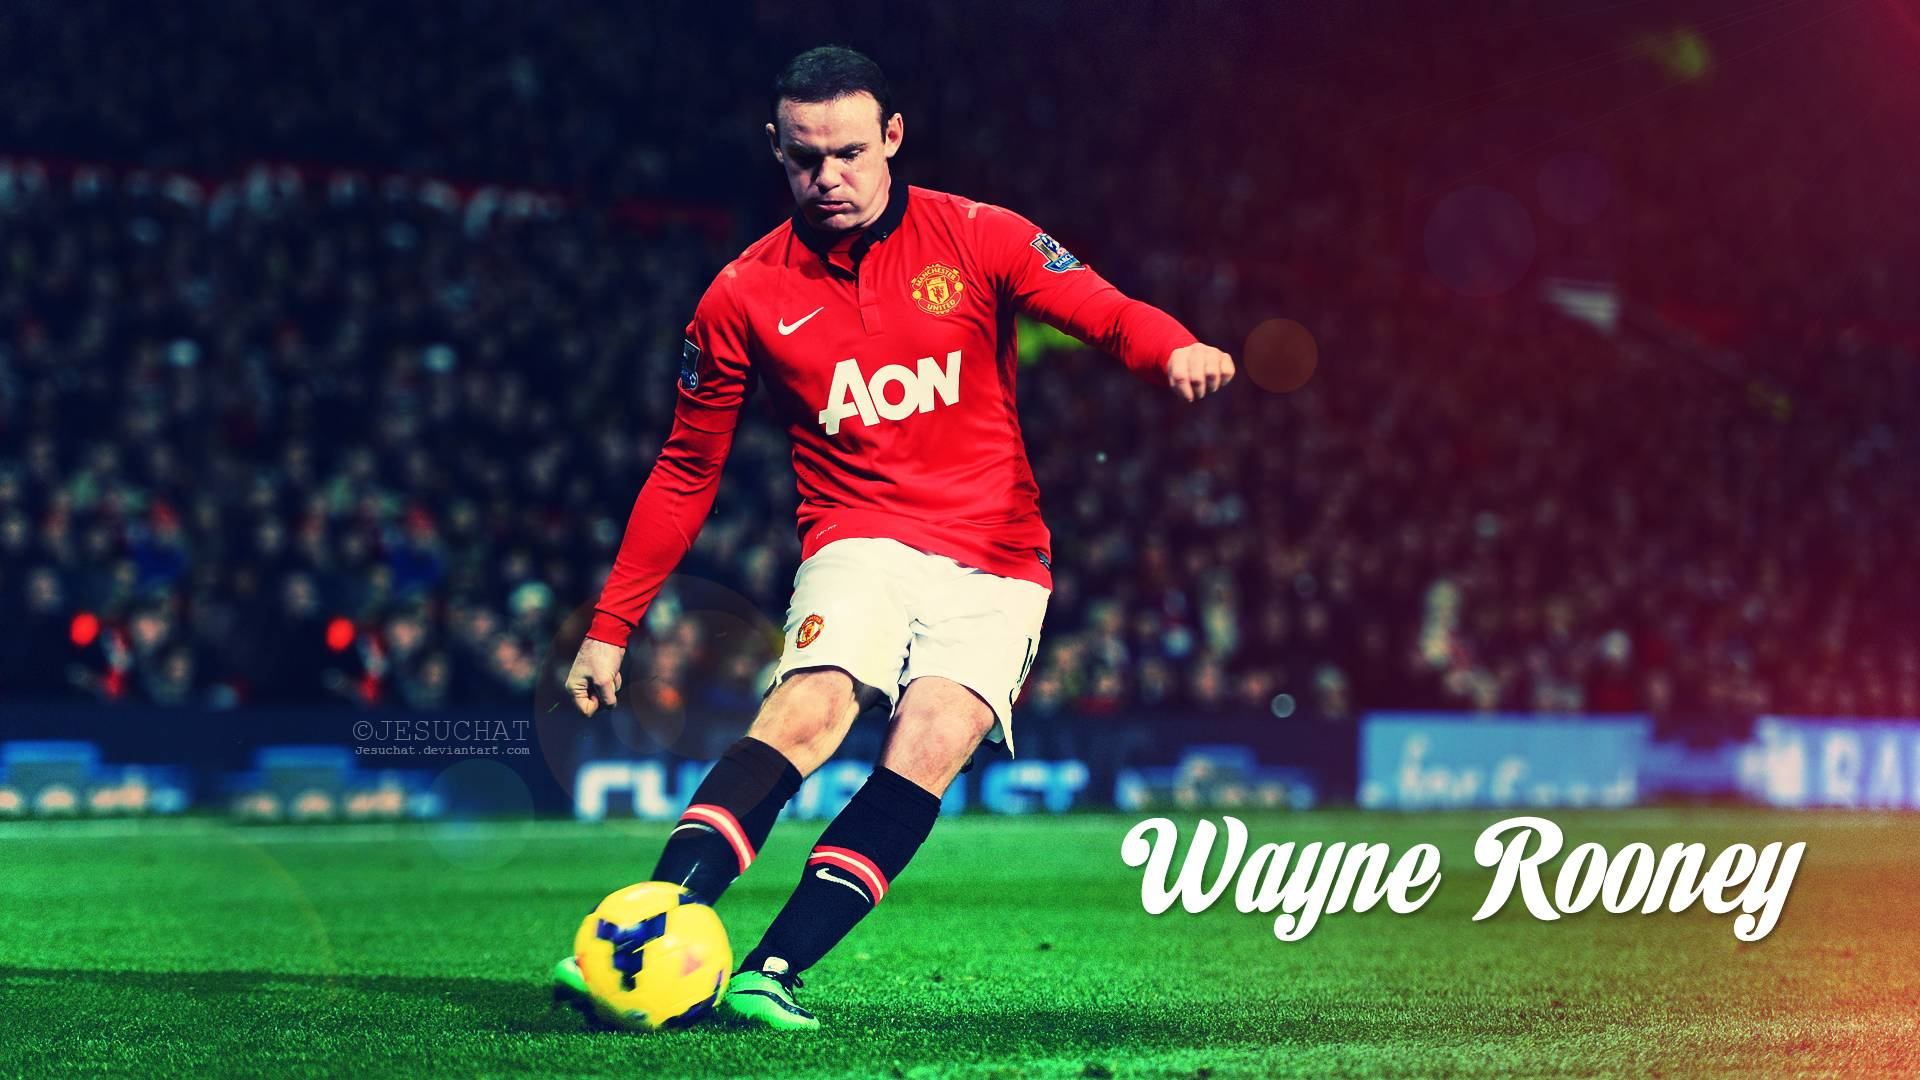 Wallpapers Of Rooney